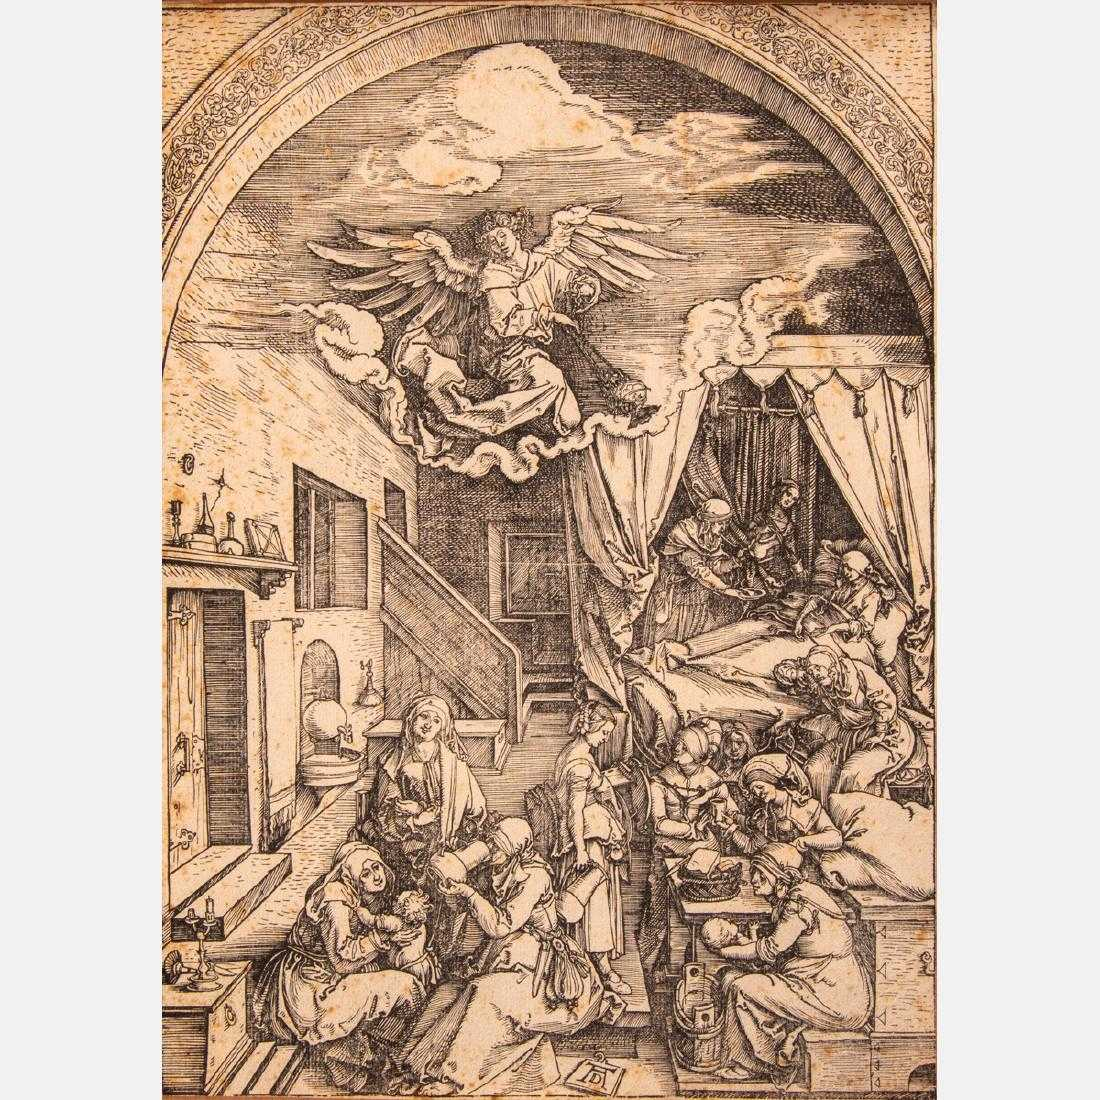 Early 16th century woodcuts and engravings will feature a pair of woodcuts on laid paper by Albrecht Dürer (German, 1471-1528), including The Birth of Mary (circa 1503) (est. $1,000-$2,000).